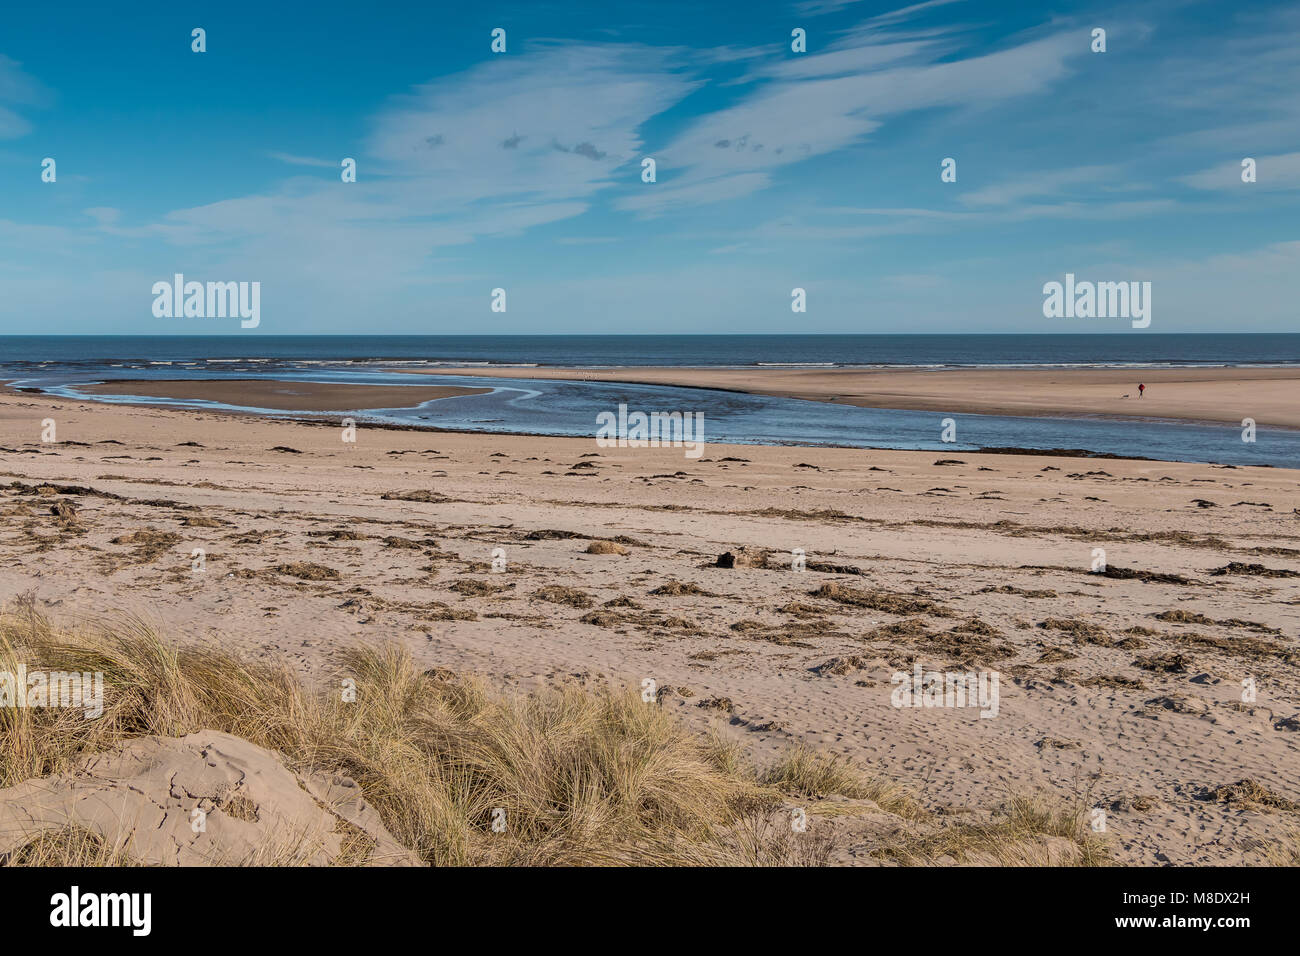 The river Aln estuary at low tide, Alnmouth, Northumberland Coast AONB, UK on a fine winter afternoon with copy - Stock Image